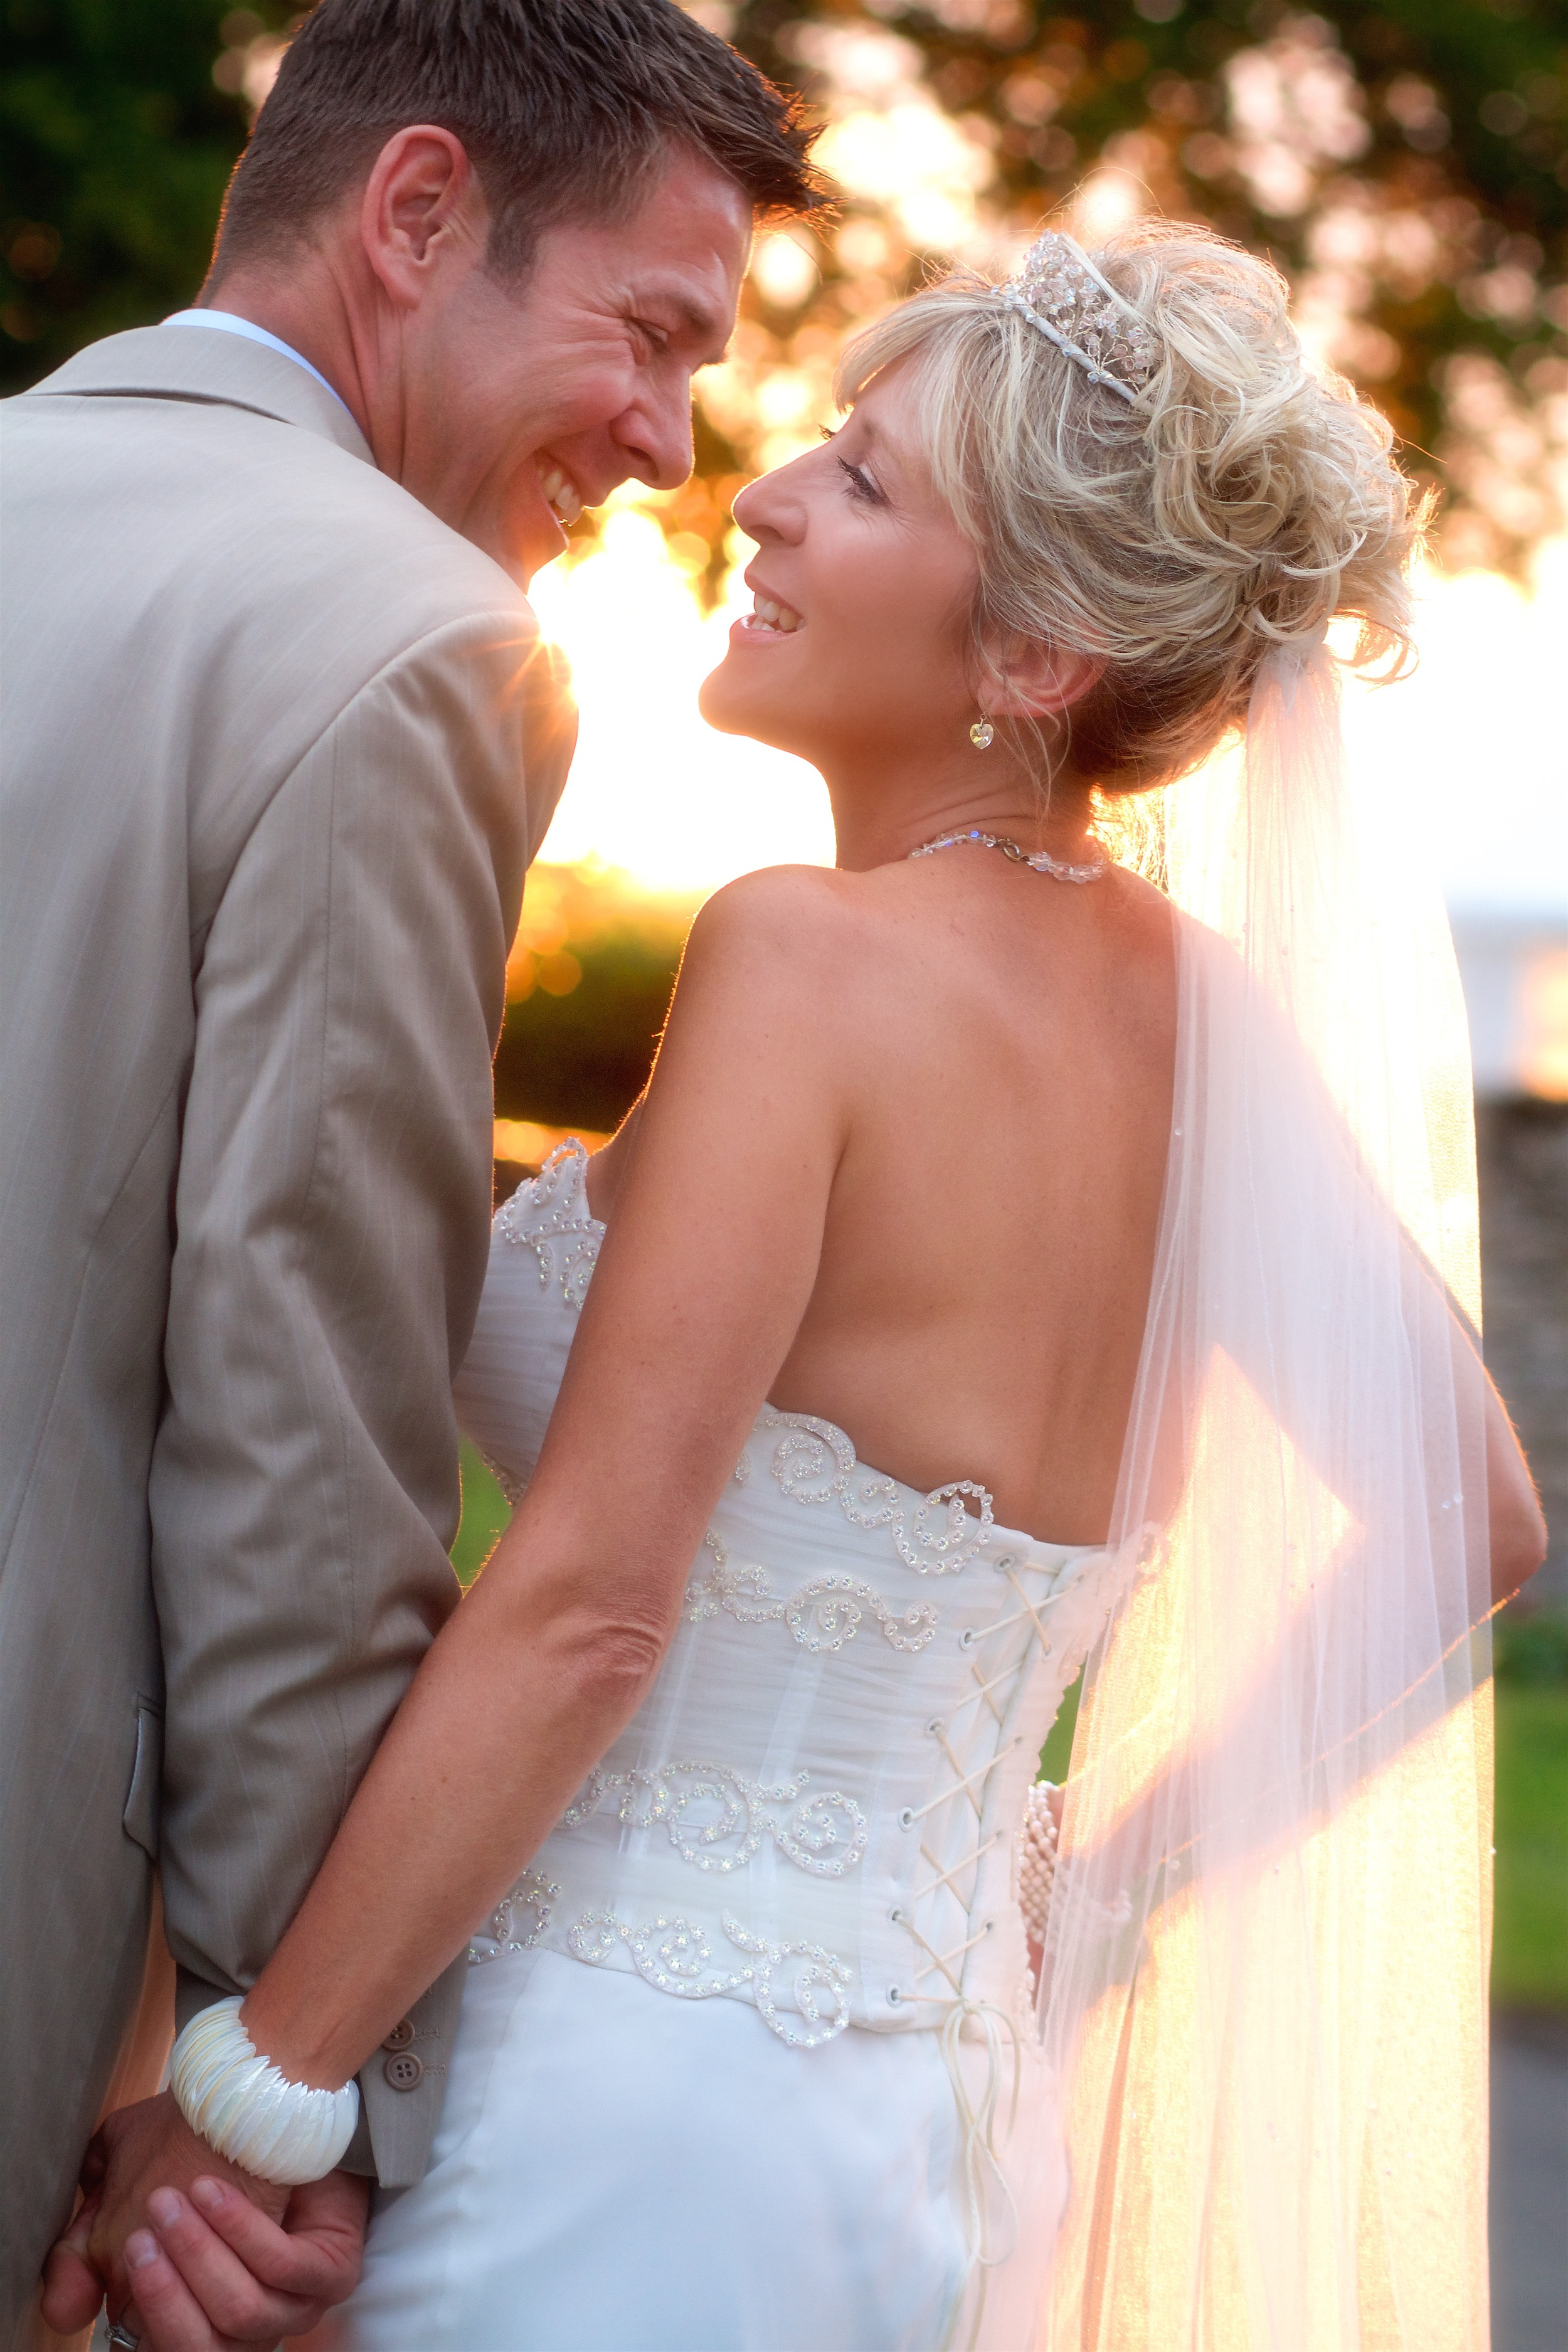 The Wedding Couple in the Evening Light. © Wedding Photography by Vivid Confetti